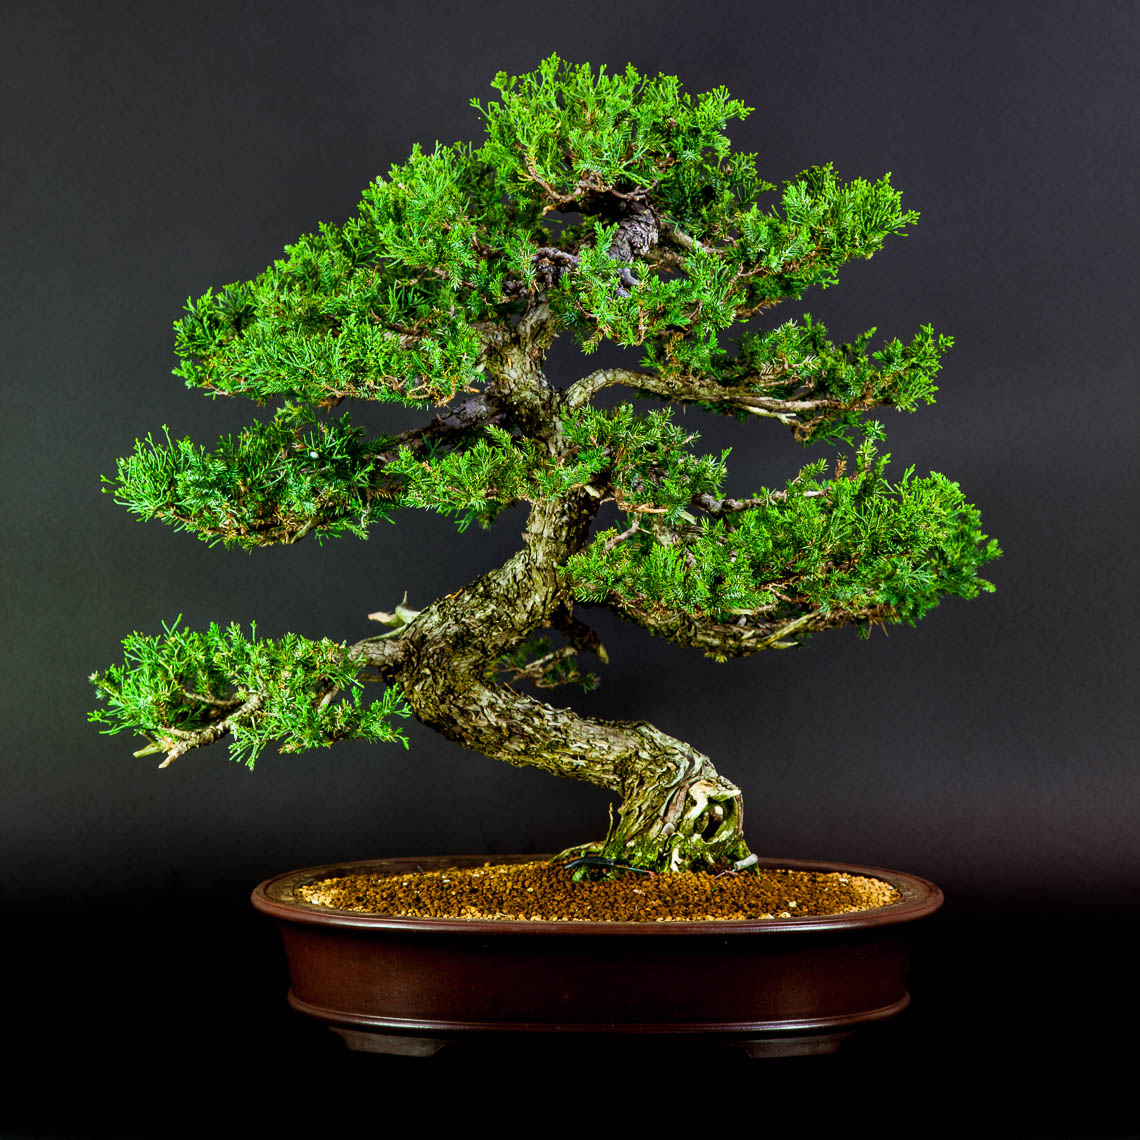 20160501_Bonsai-62-edit